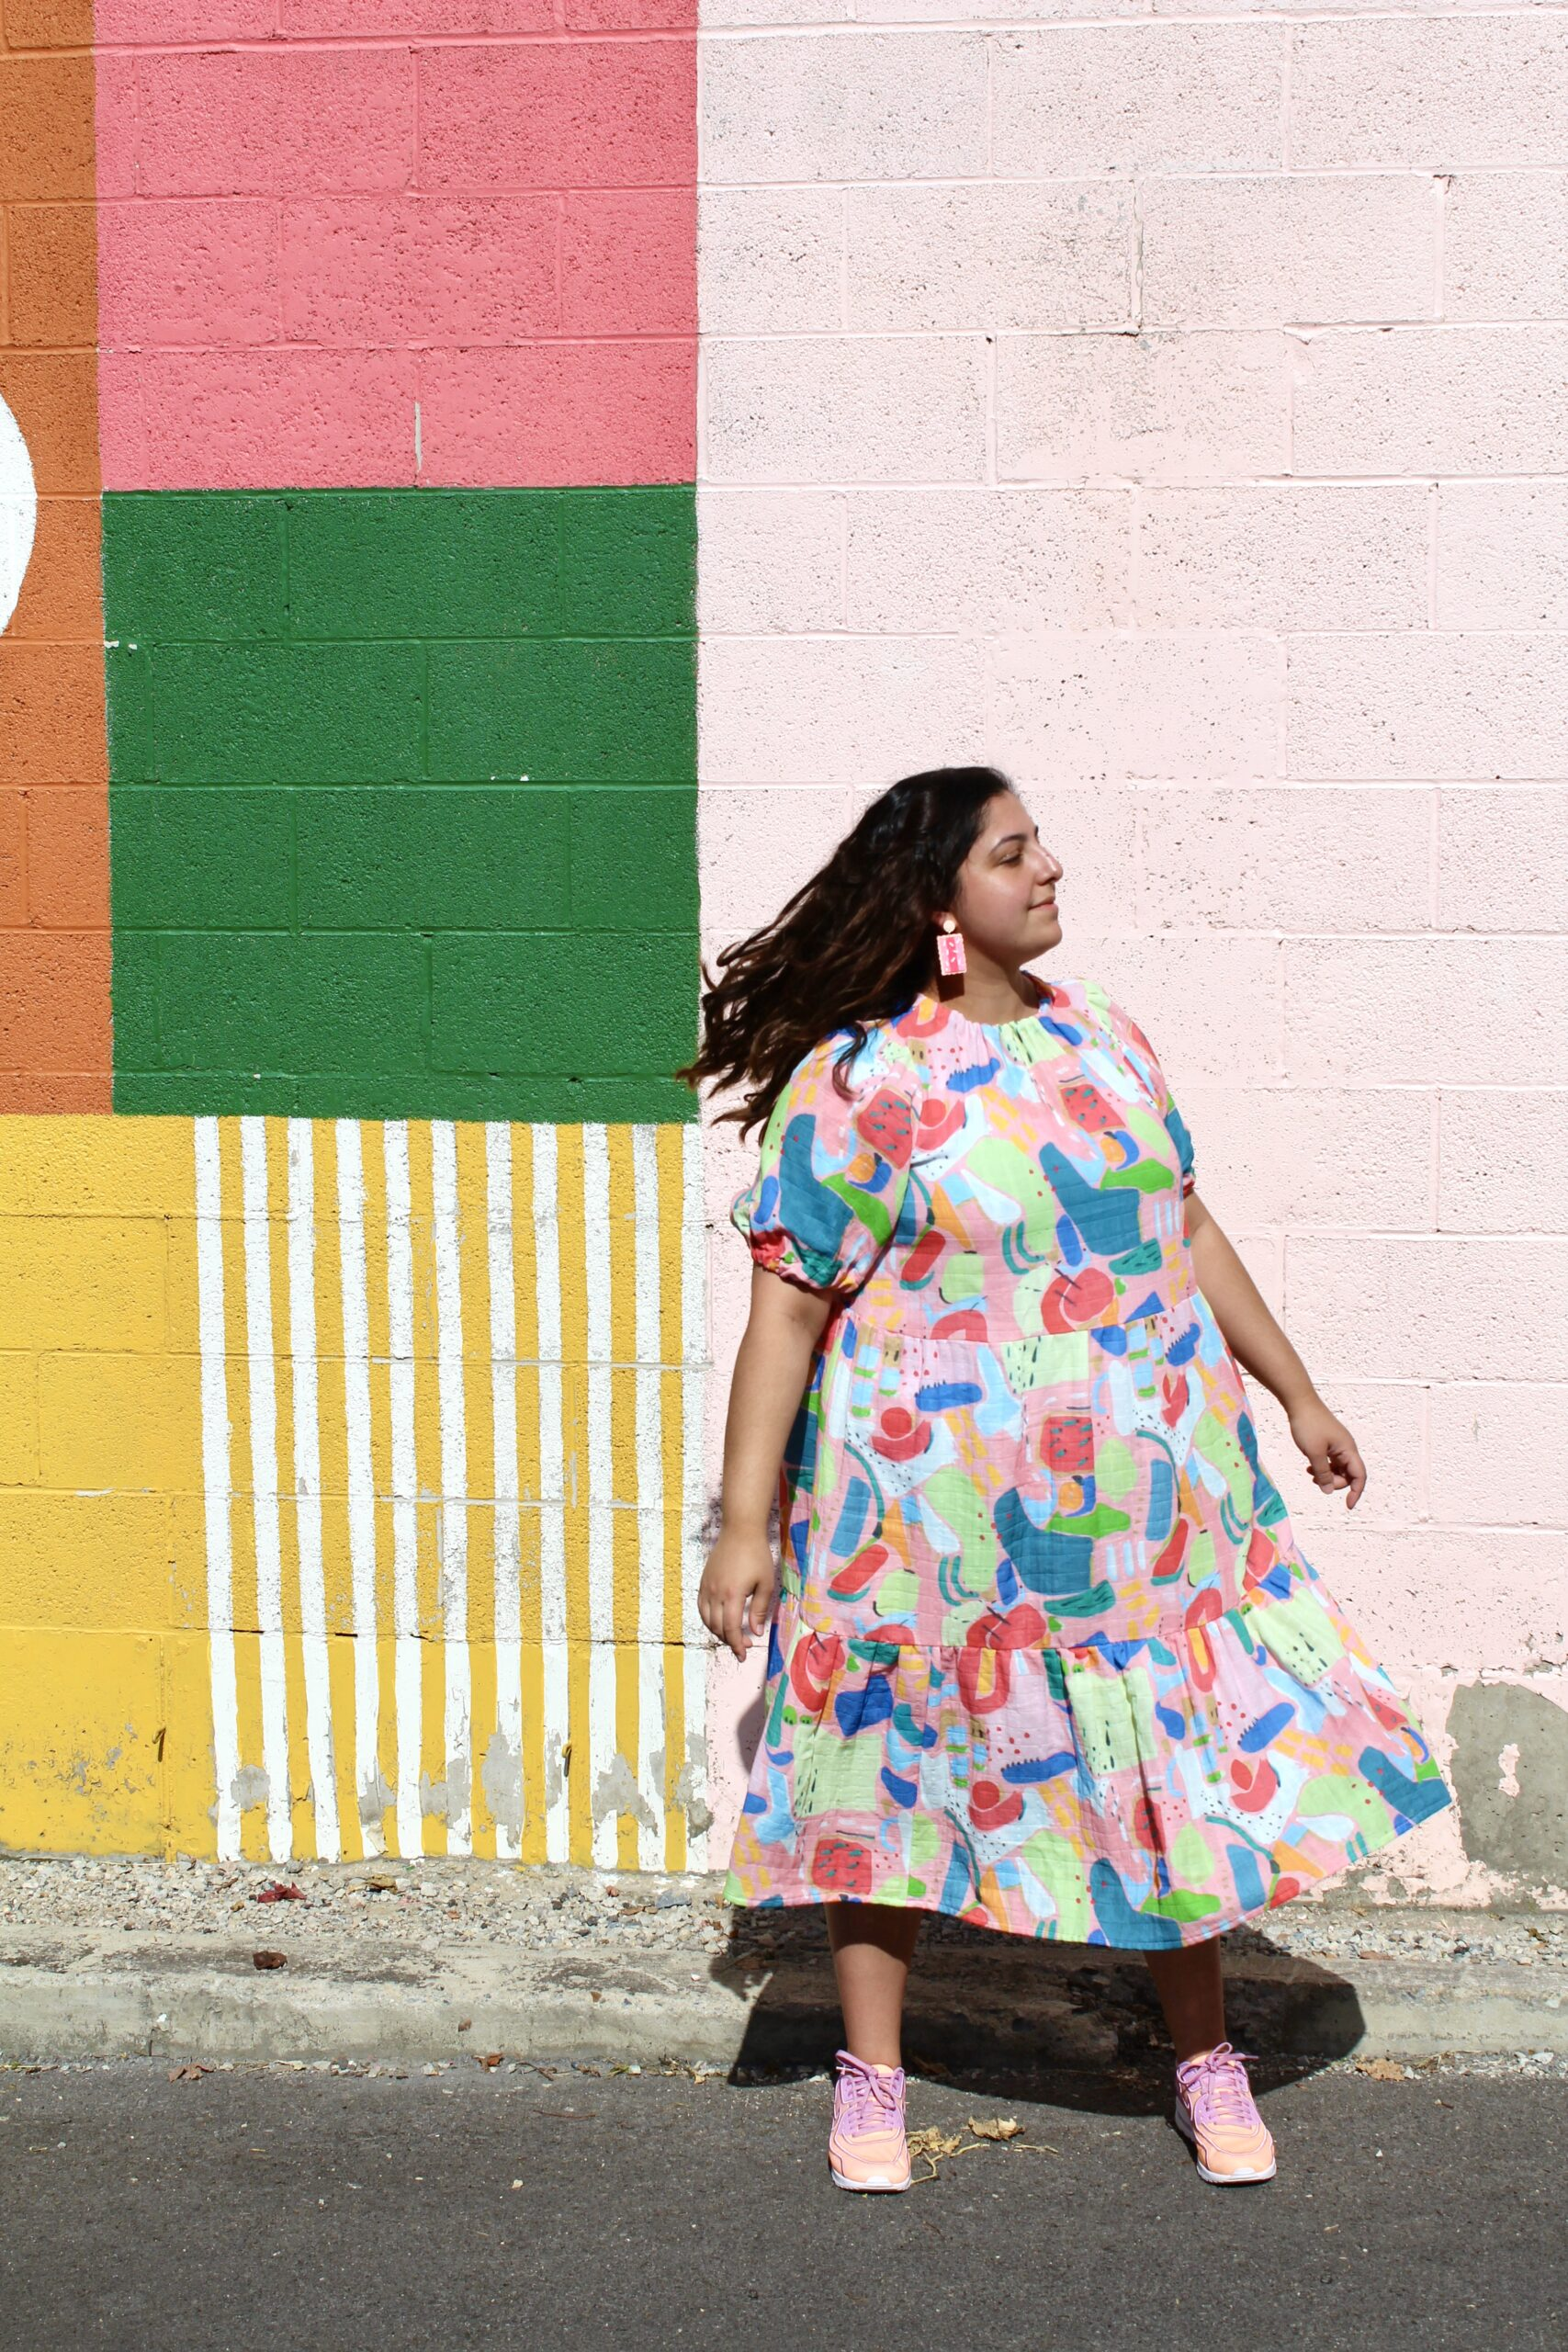 @sewlike, Romy-Krystal Cutler, in a bold printed dress, in front of a colorfully painted wall.